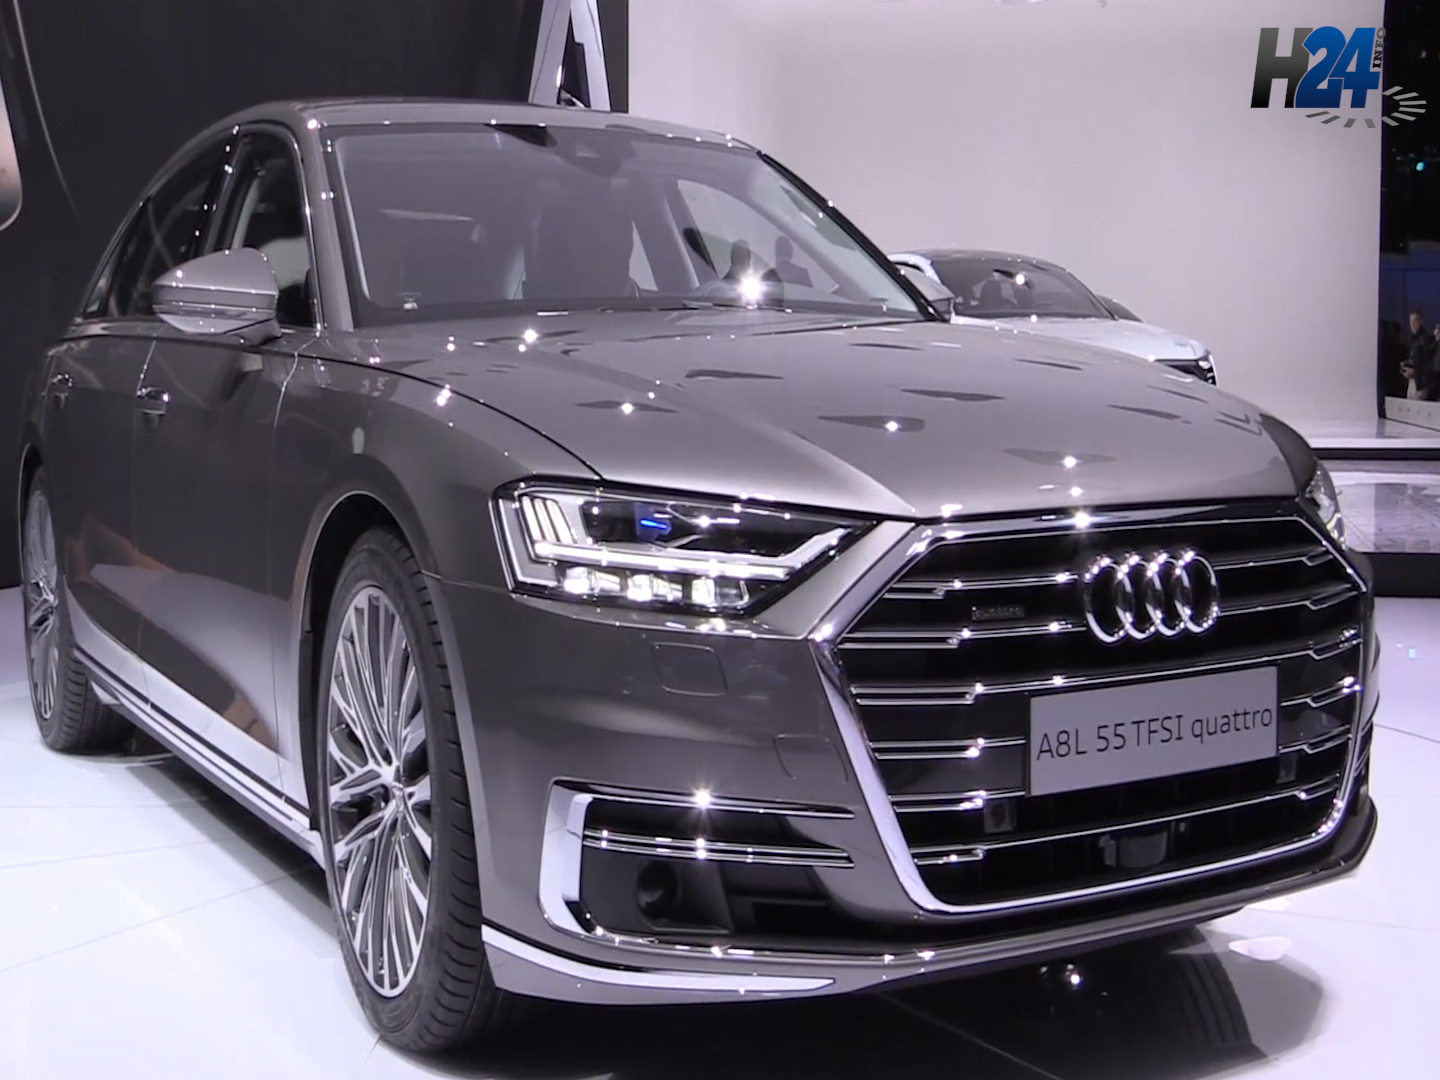 vid o l 39 audi a8 en vedette l 39 auto expo 2018 h24info. Black Bedroom Furniture Sets. Home Design Ideas